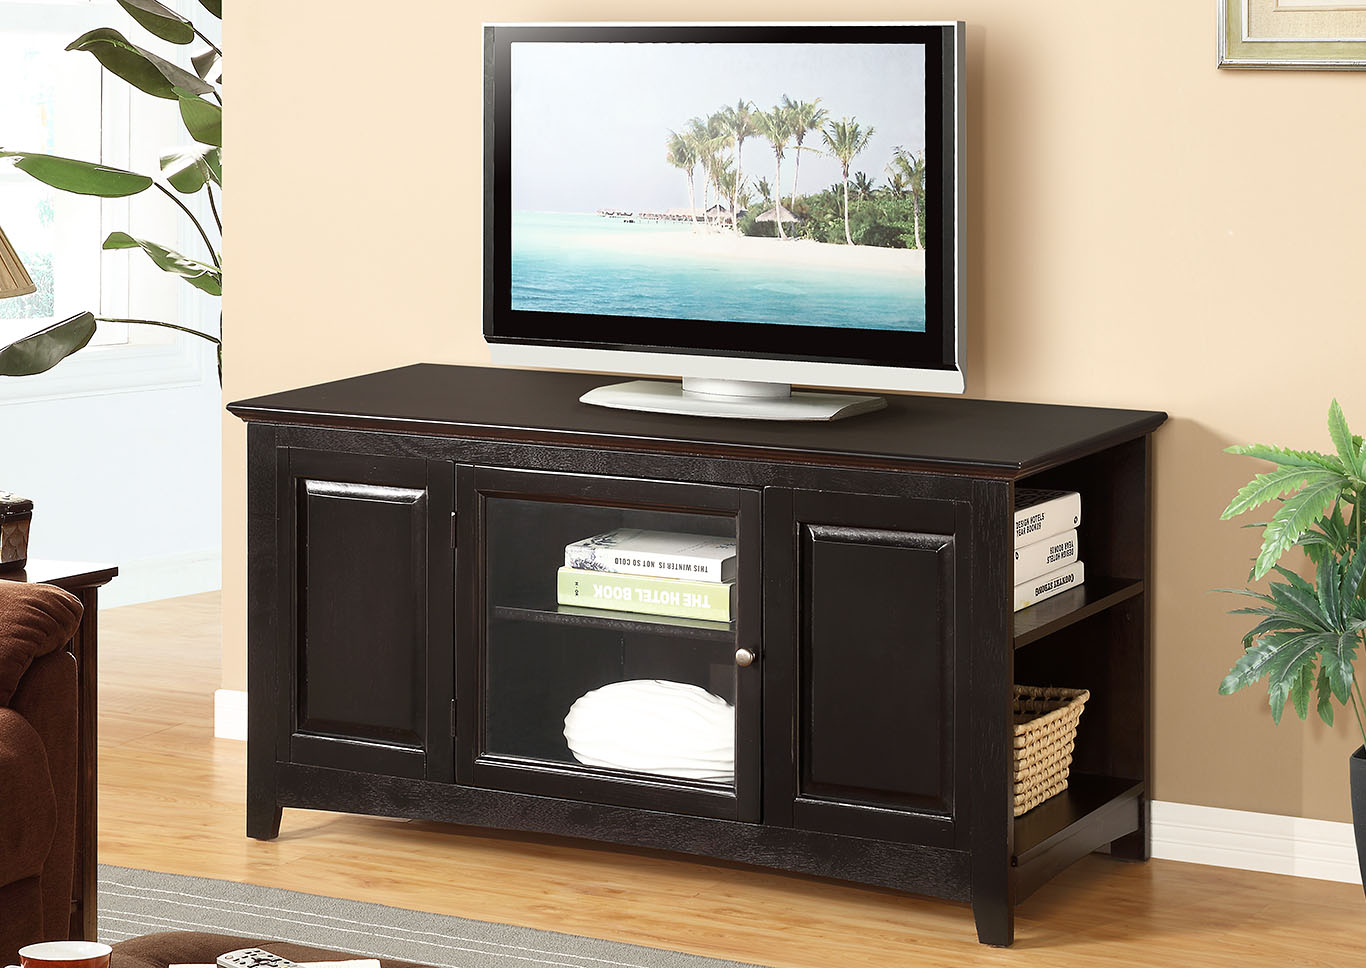 Cherry TV Stand,Global Trading